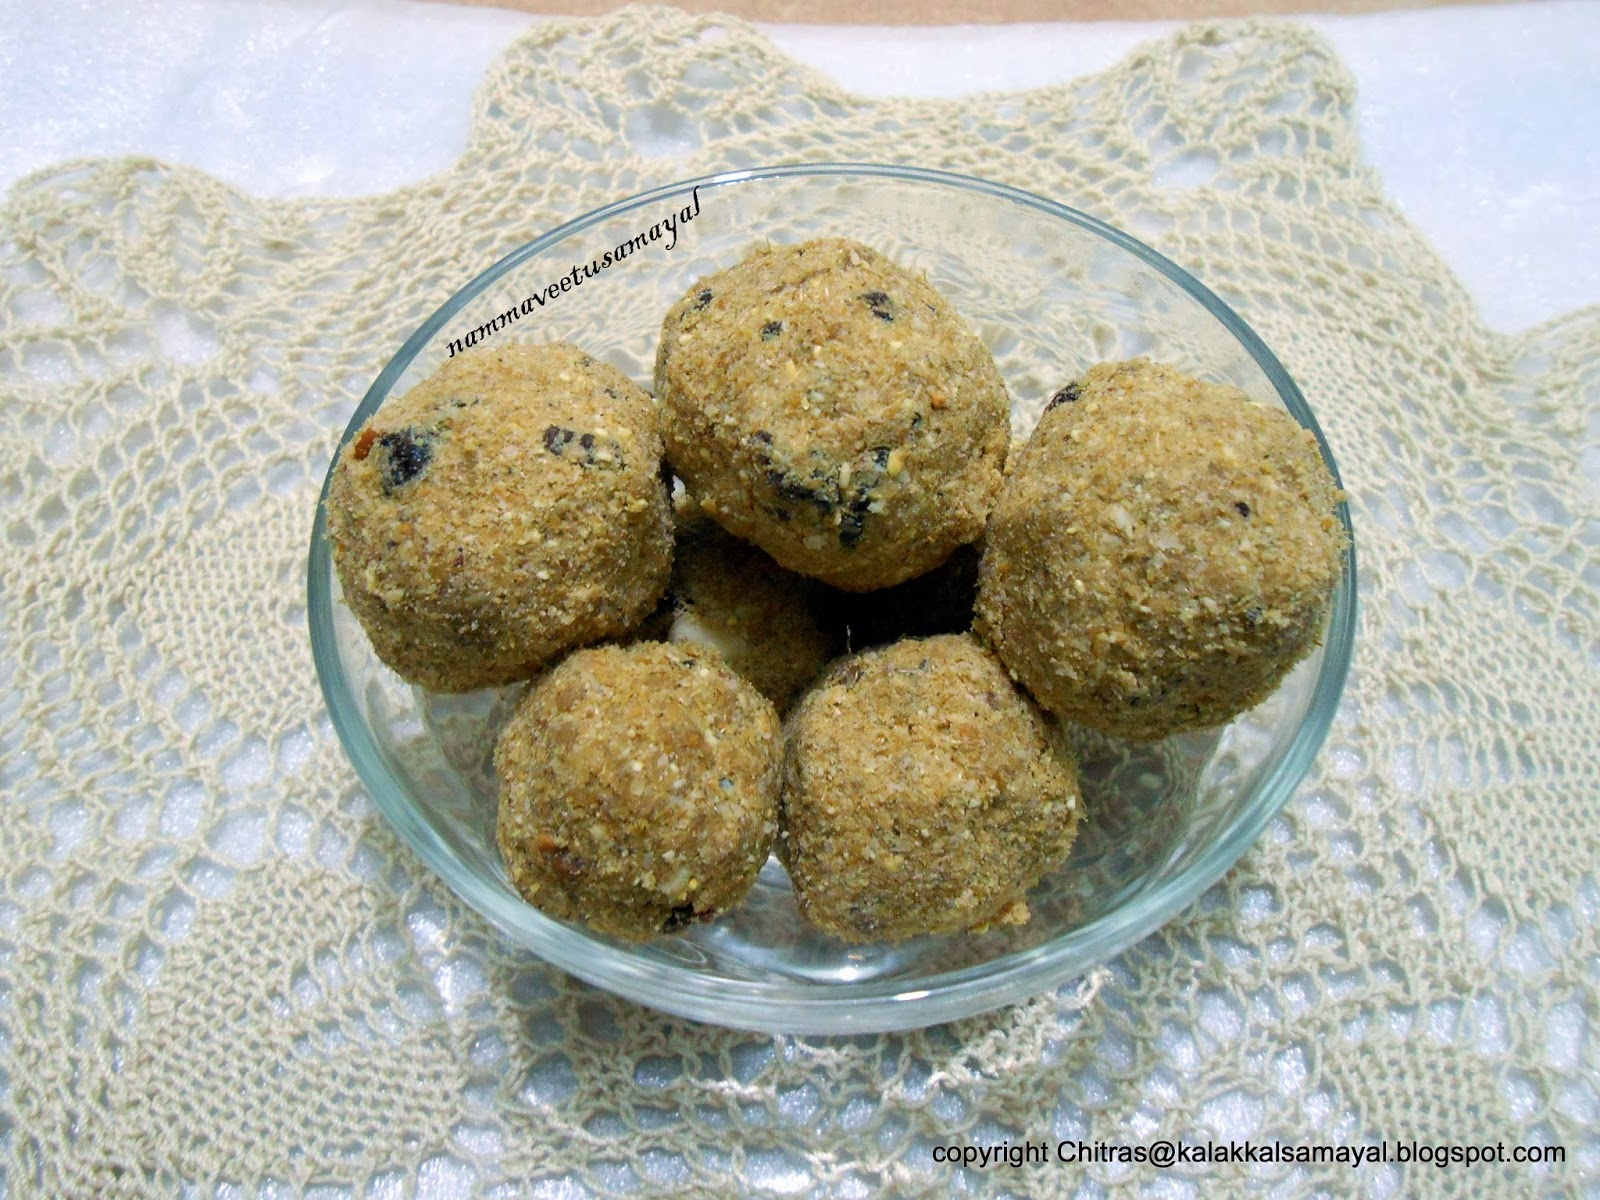 Foxtail Millet [ Thinai ] Fried grams Balls